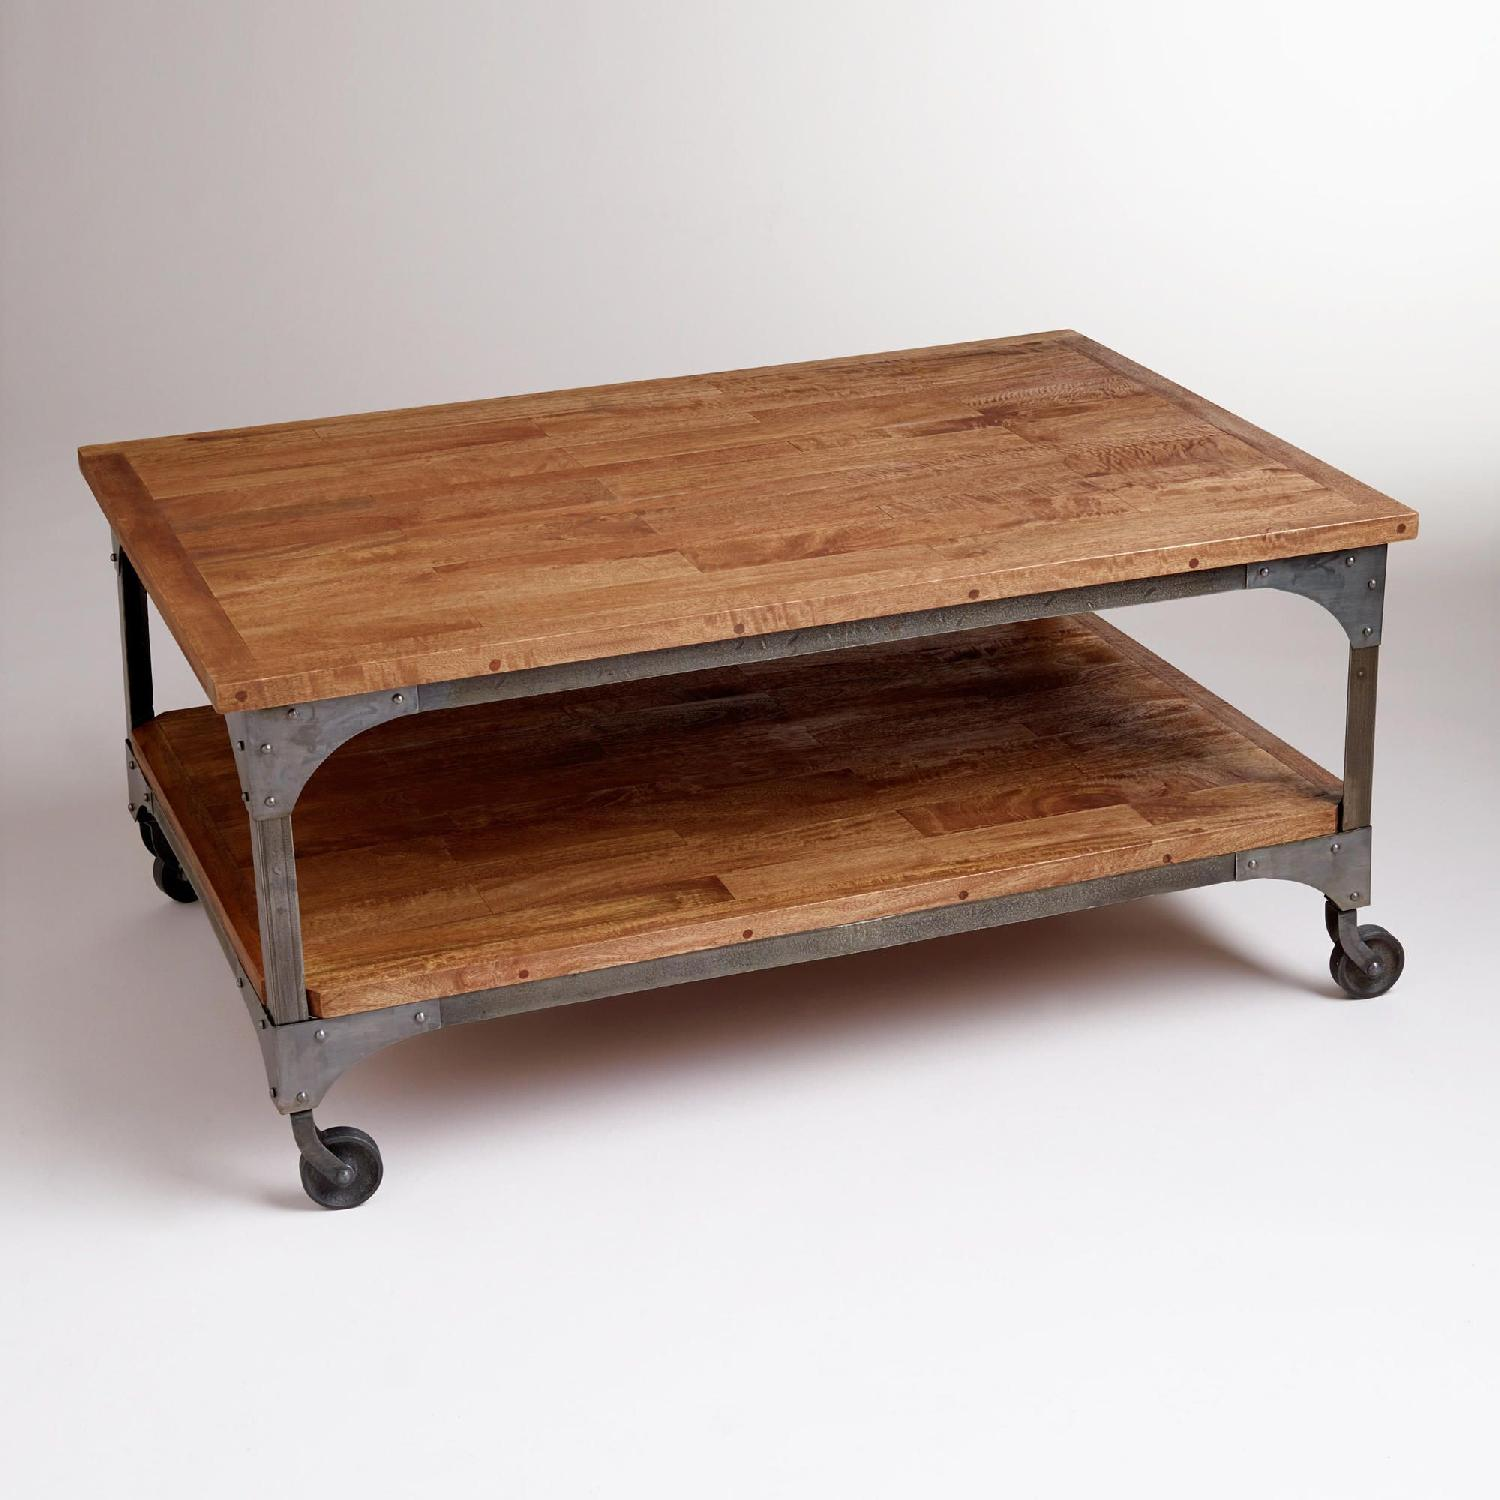 World Market Aiden Coffee Table - Industrial look - image-7